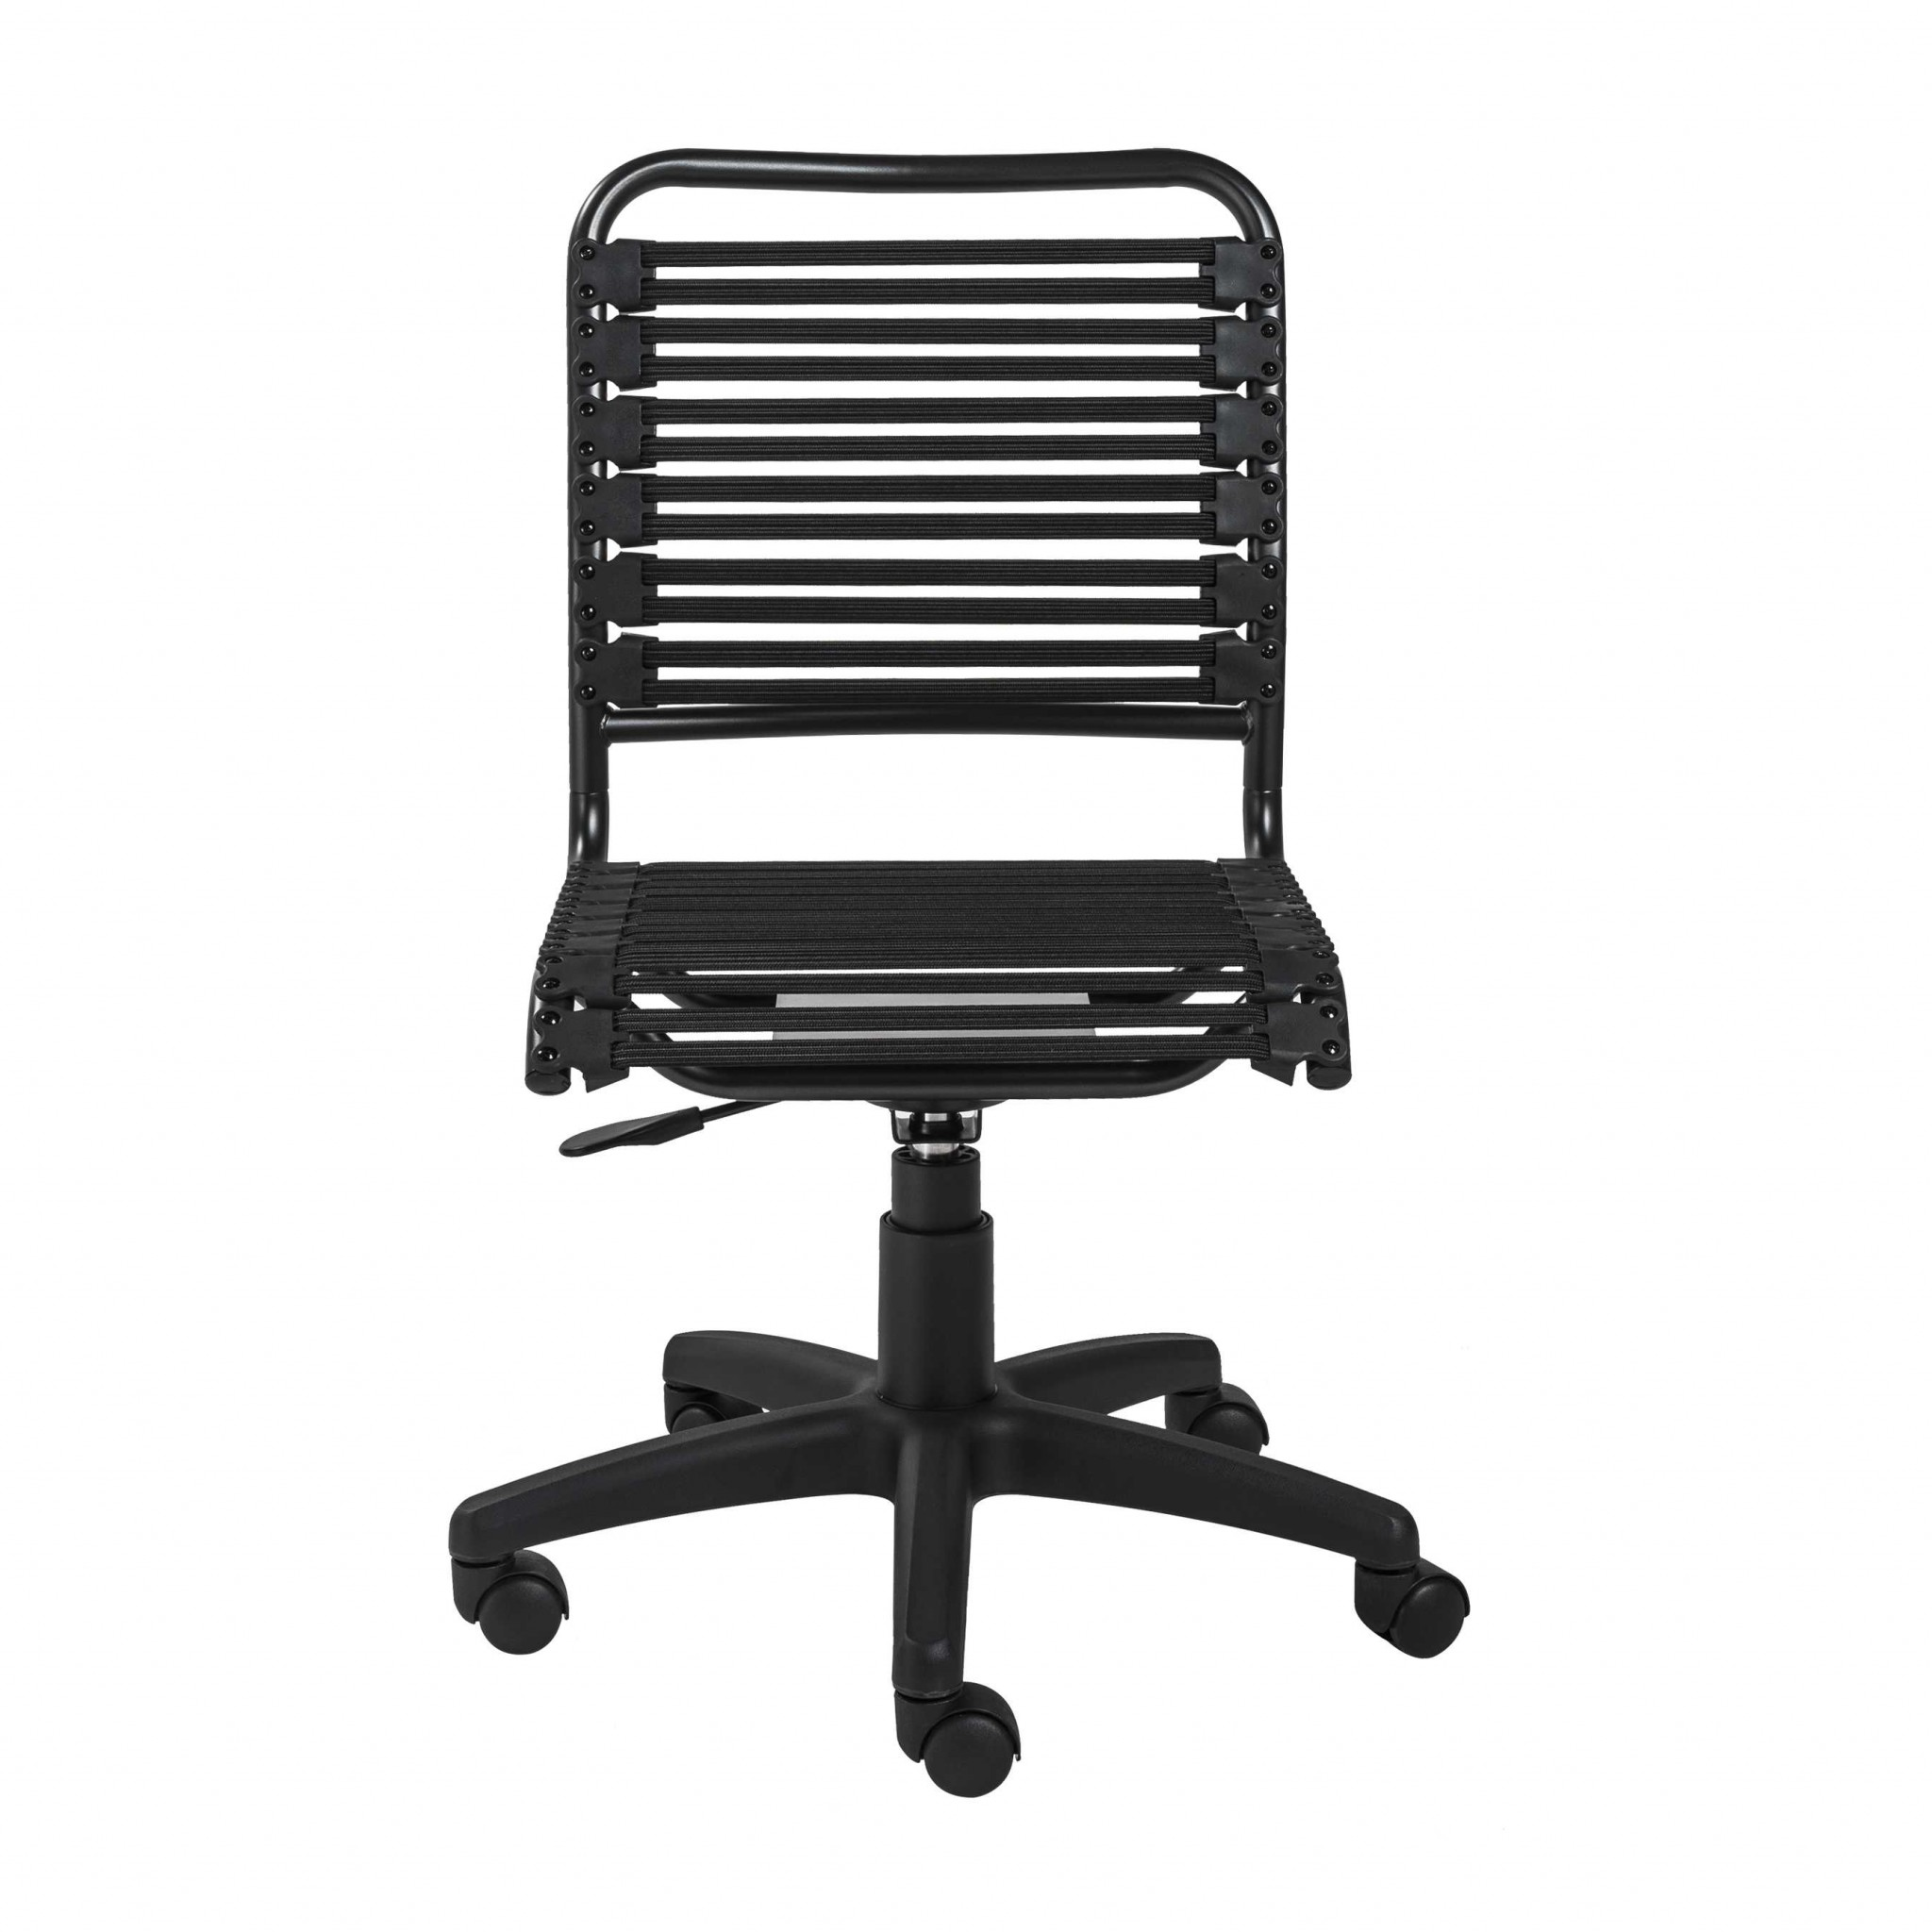 "18.12"" X 24"" X 37.21"" Black Flat Bungie Cords Low Back Office Chair with Graphite Black Frame and Base"